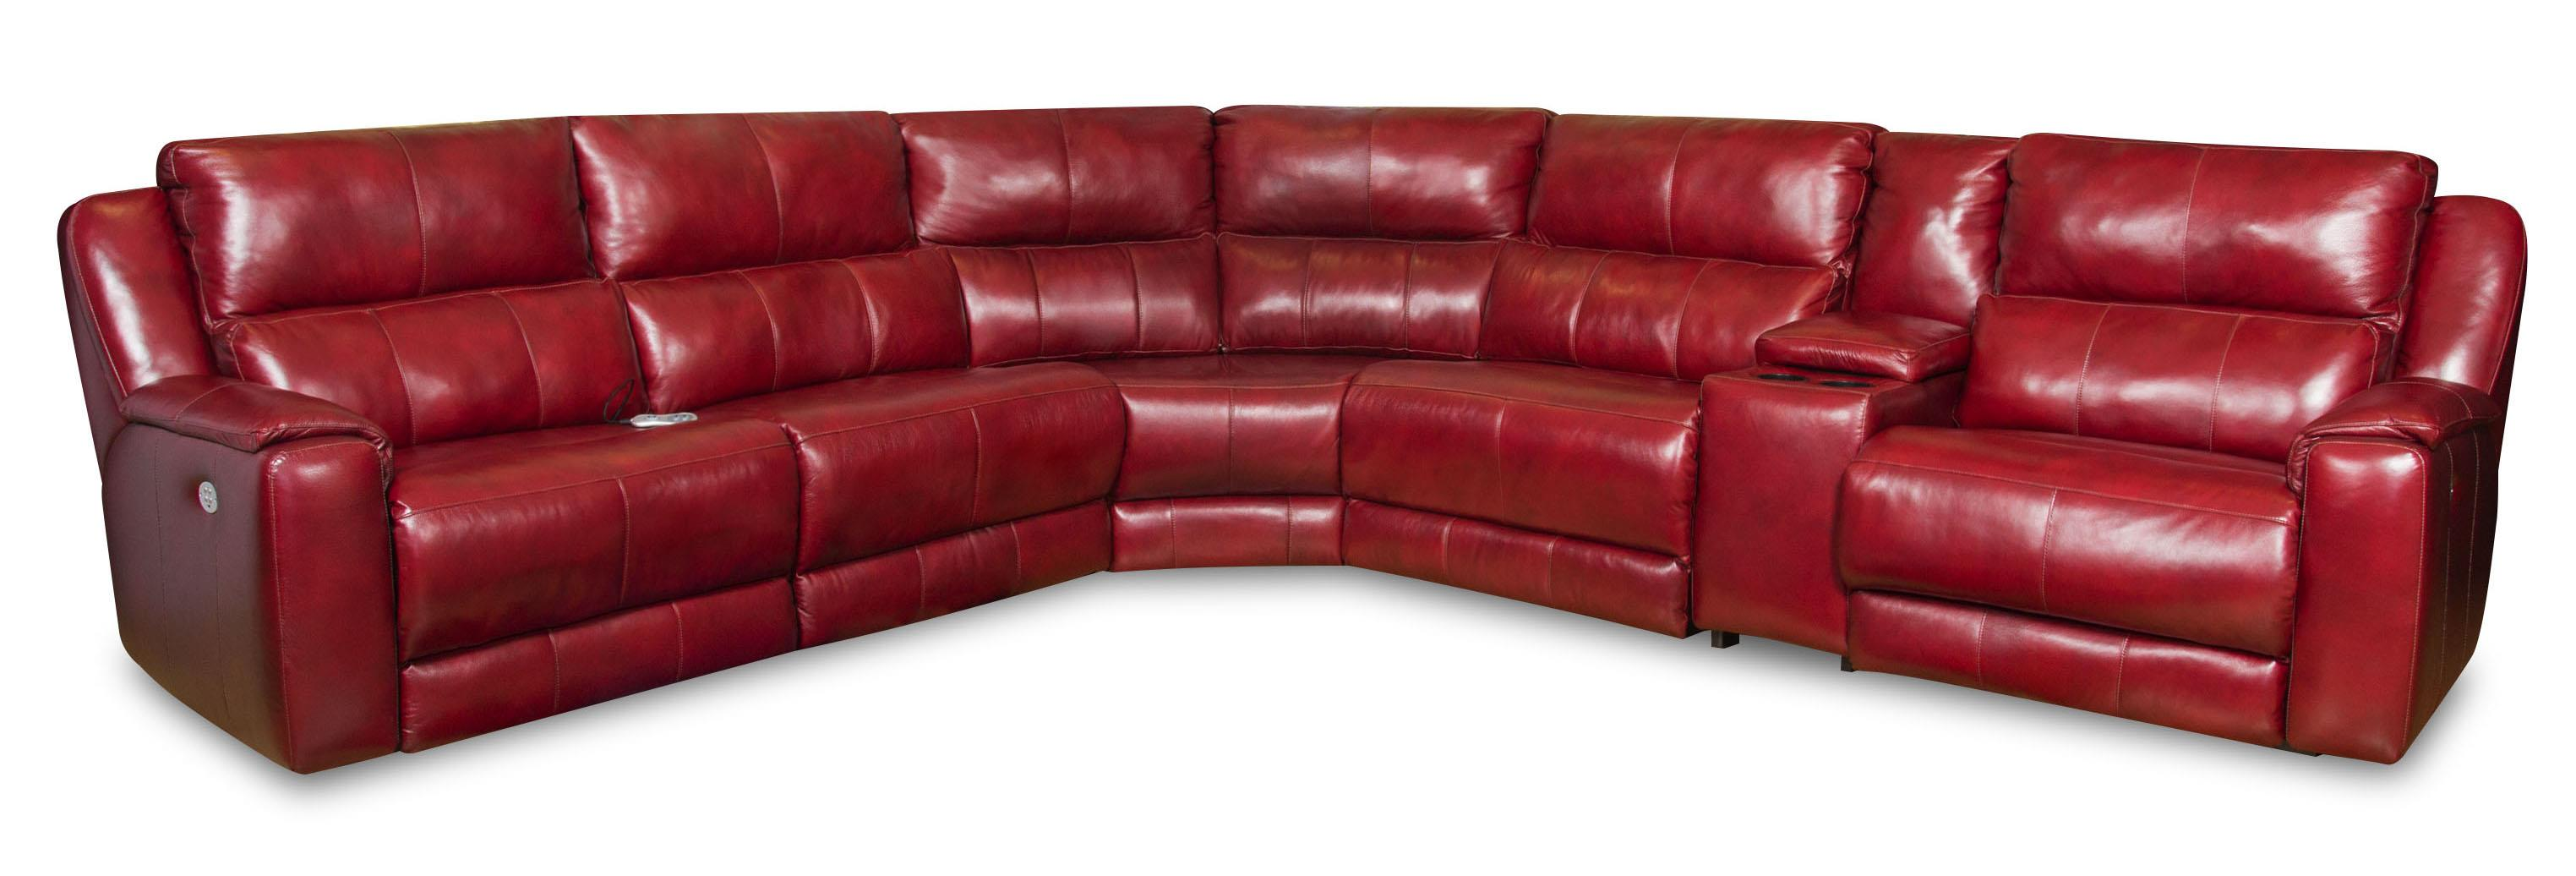 Southern Motion Dazzle Sectional Sofa With 5 Seats And Cup